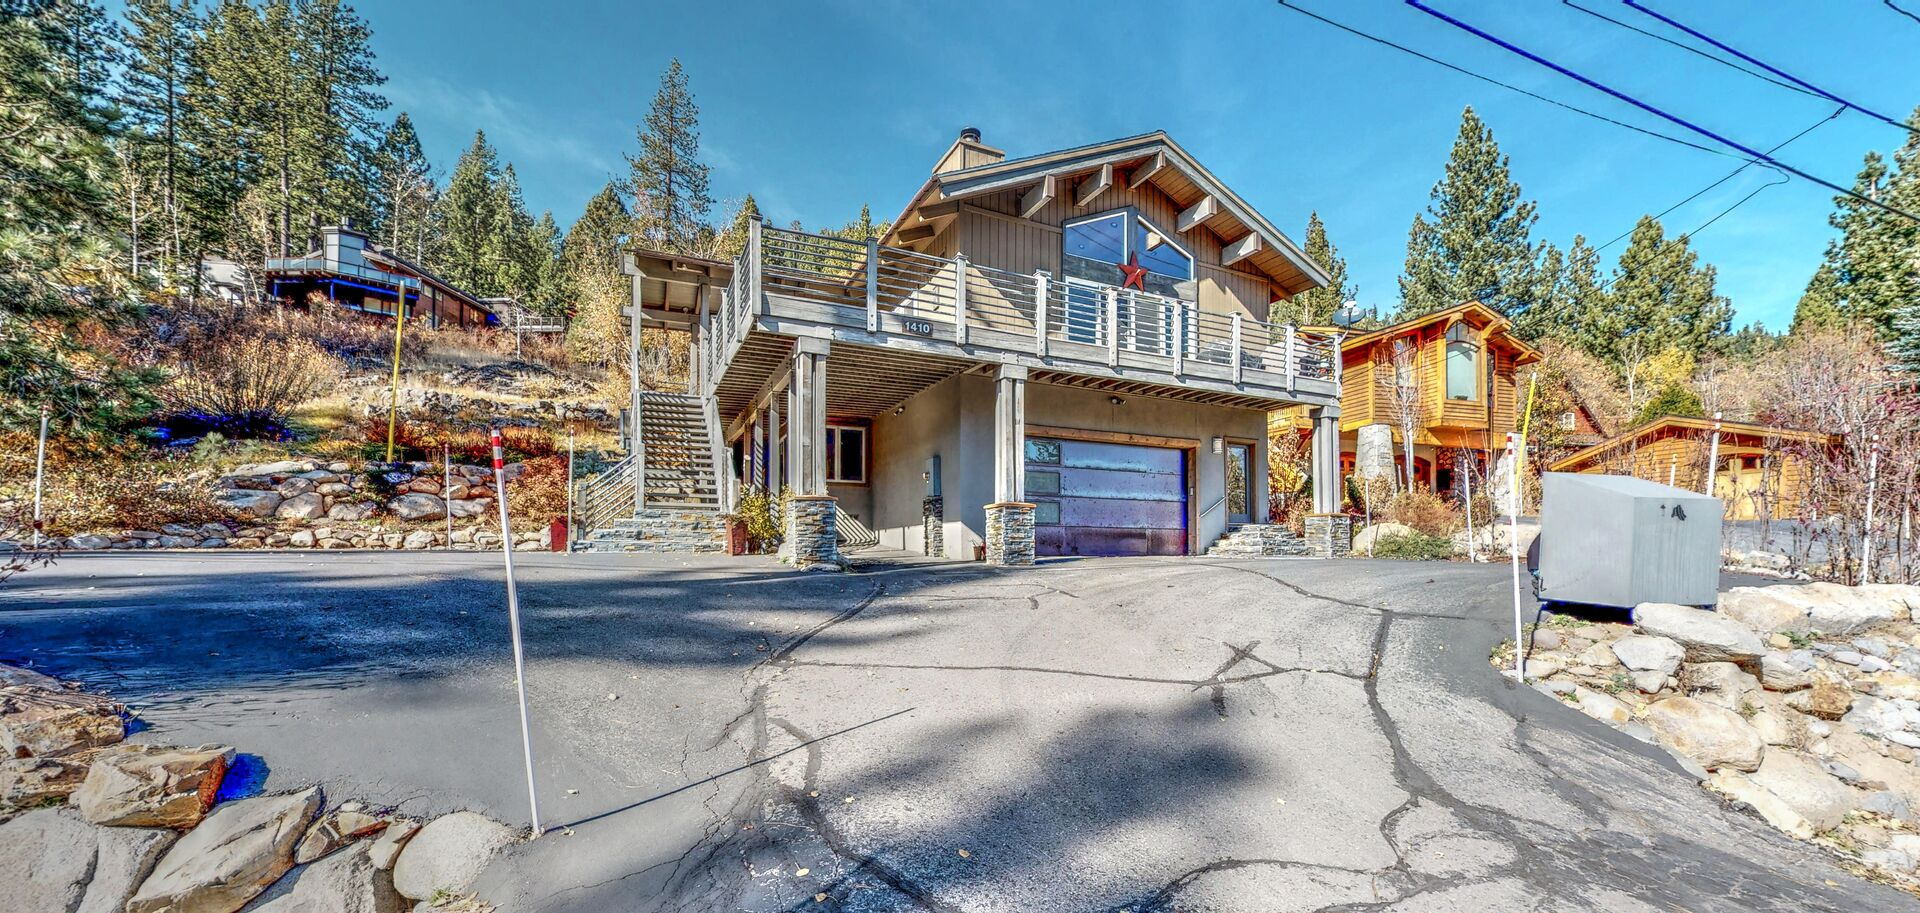 Front view of this squaw valley rental, showing off the garage